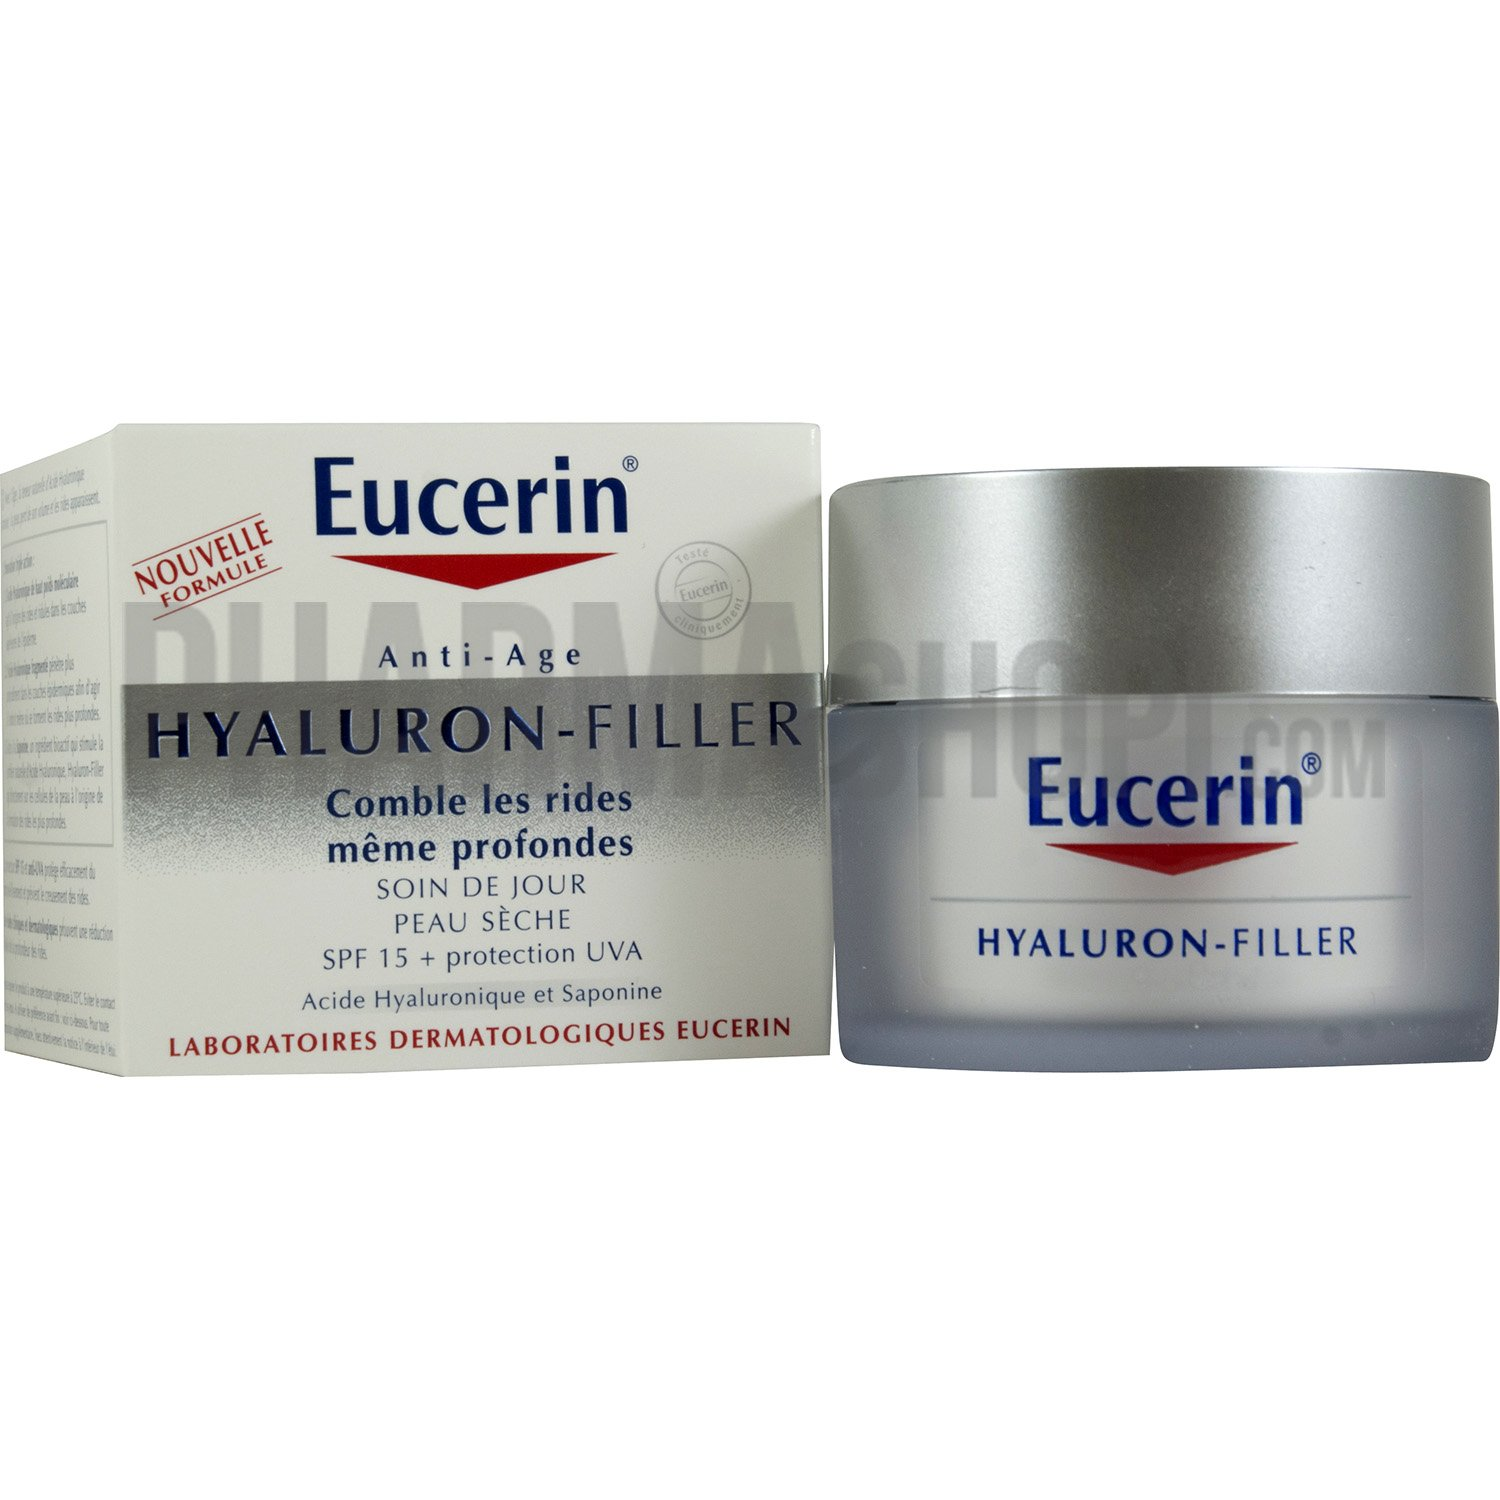 eucerin c hyaluron filler soin jour peaux sches catgorie crmes anti ge. Black Bedroom Furniture Sets. Home Design Ideas